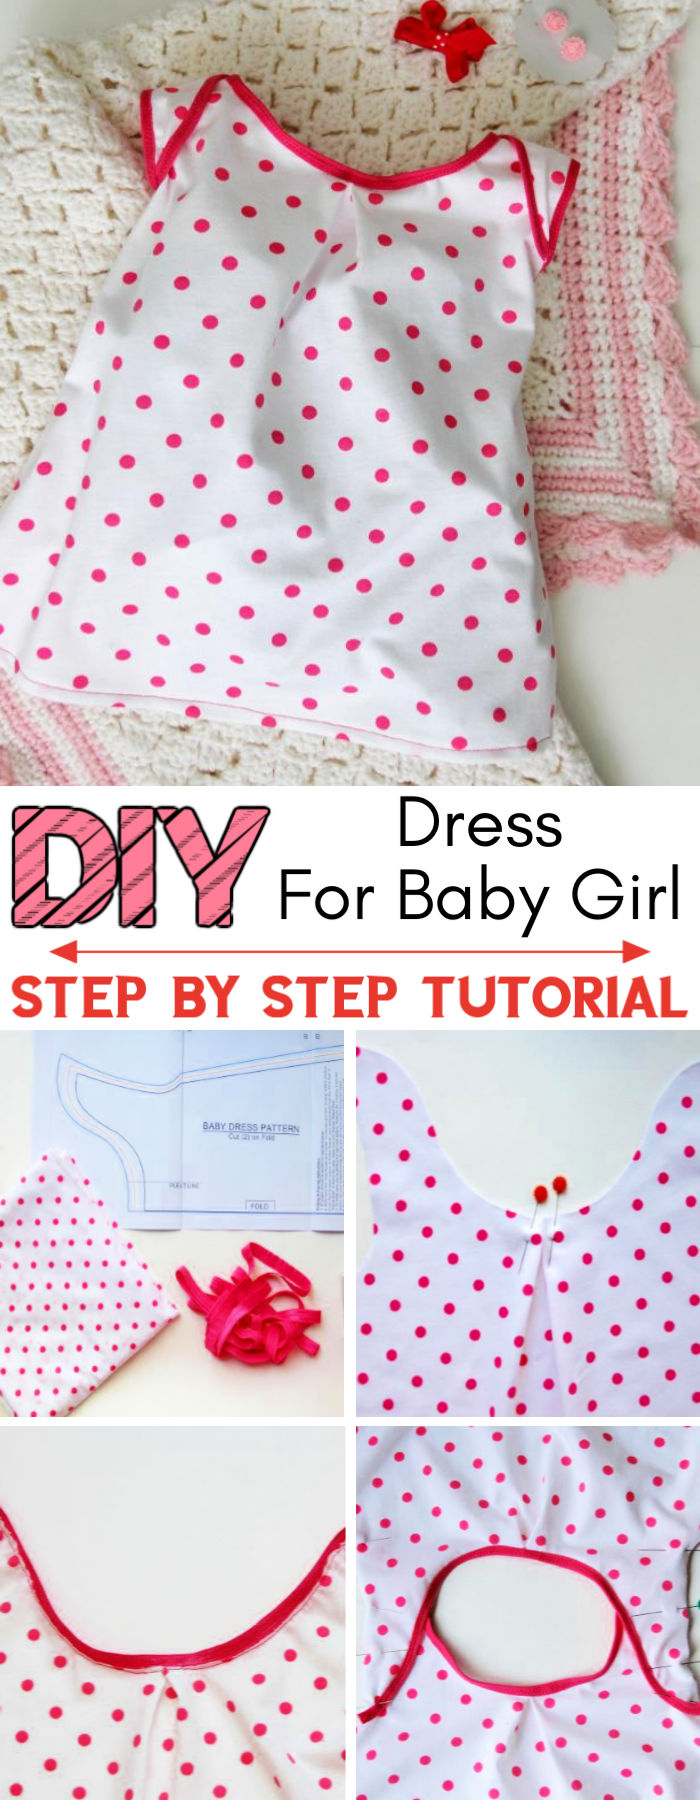 How to Sew a Knit Baby Dress